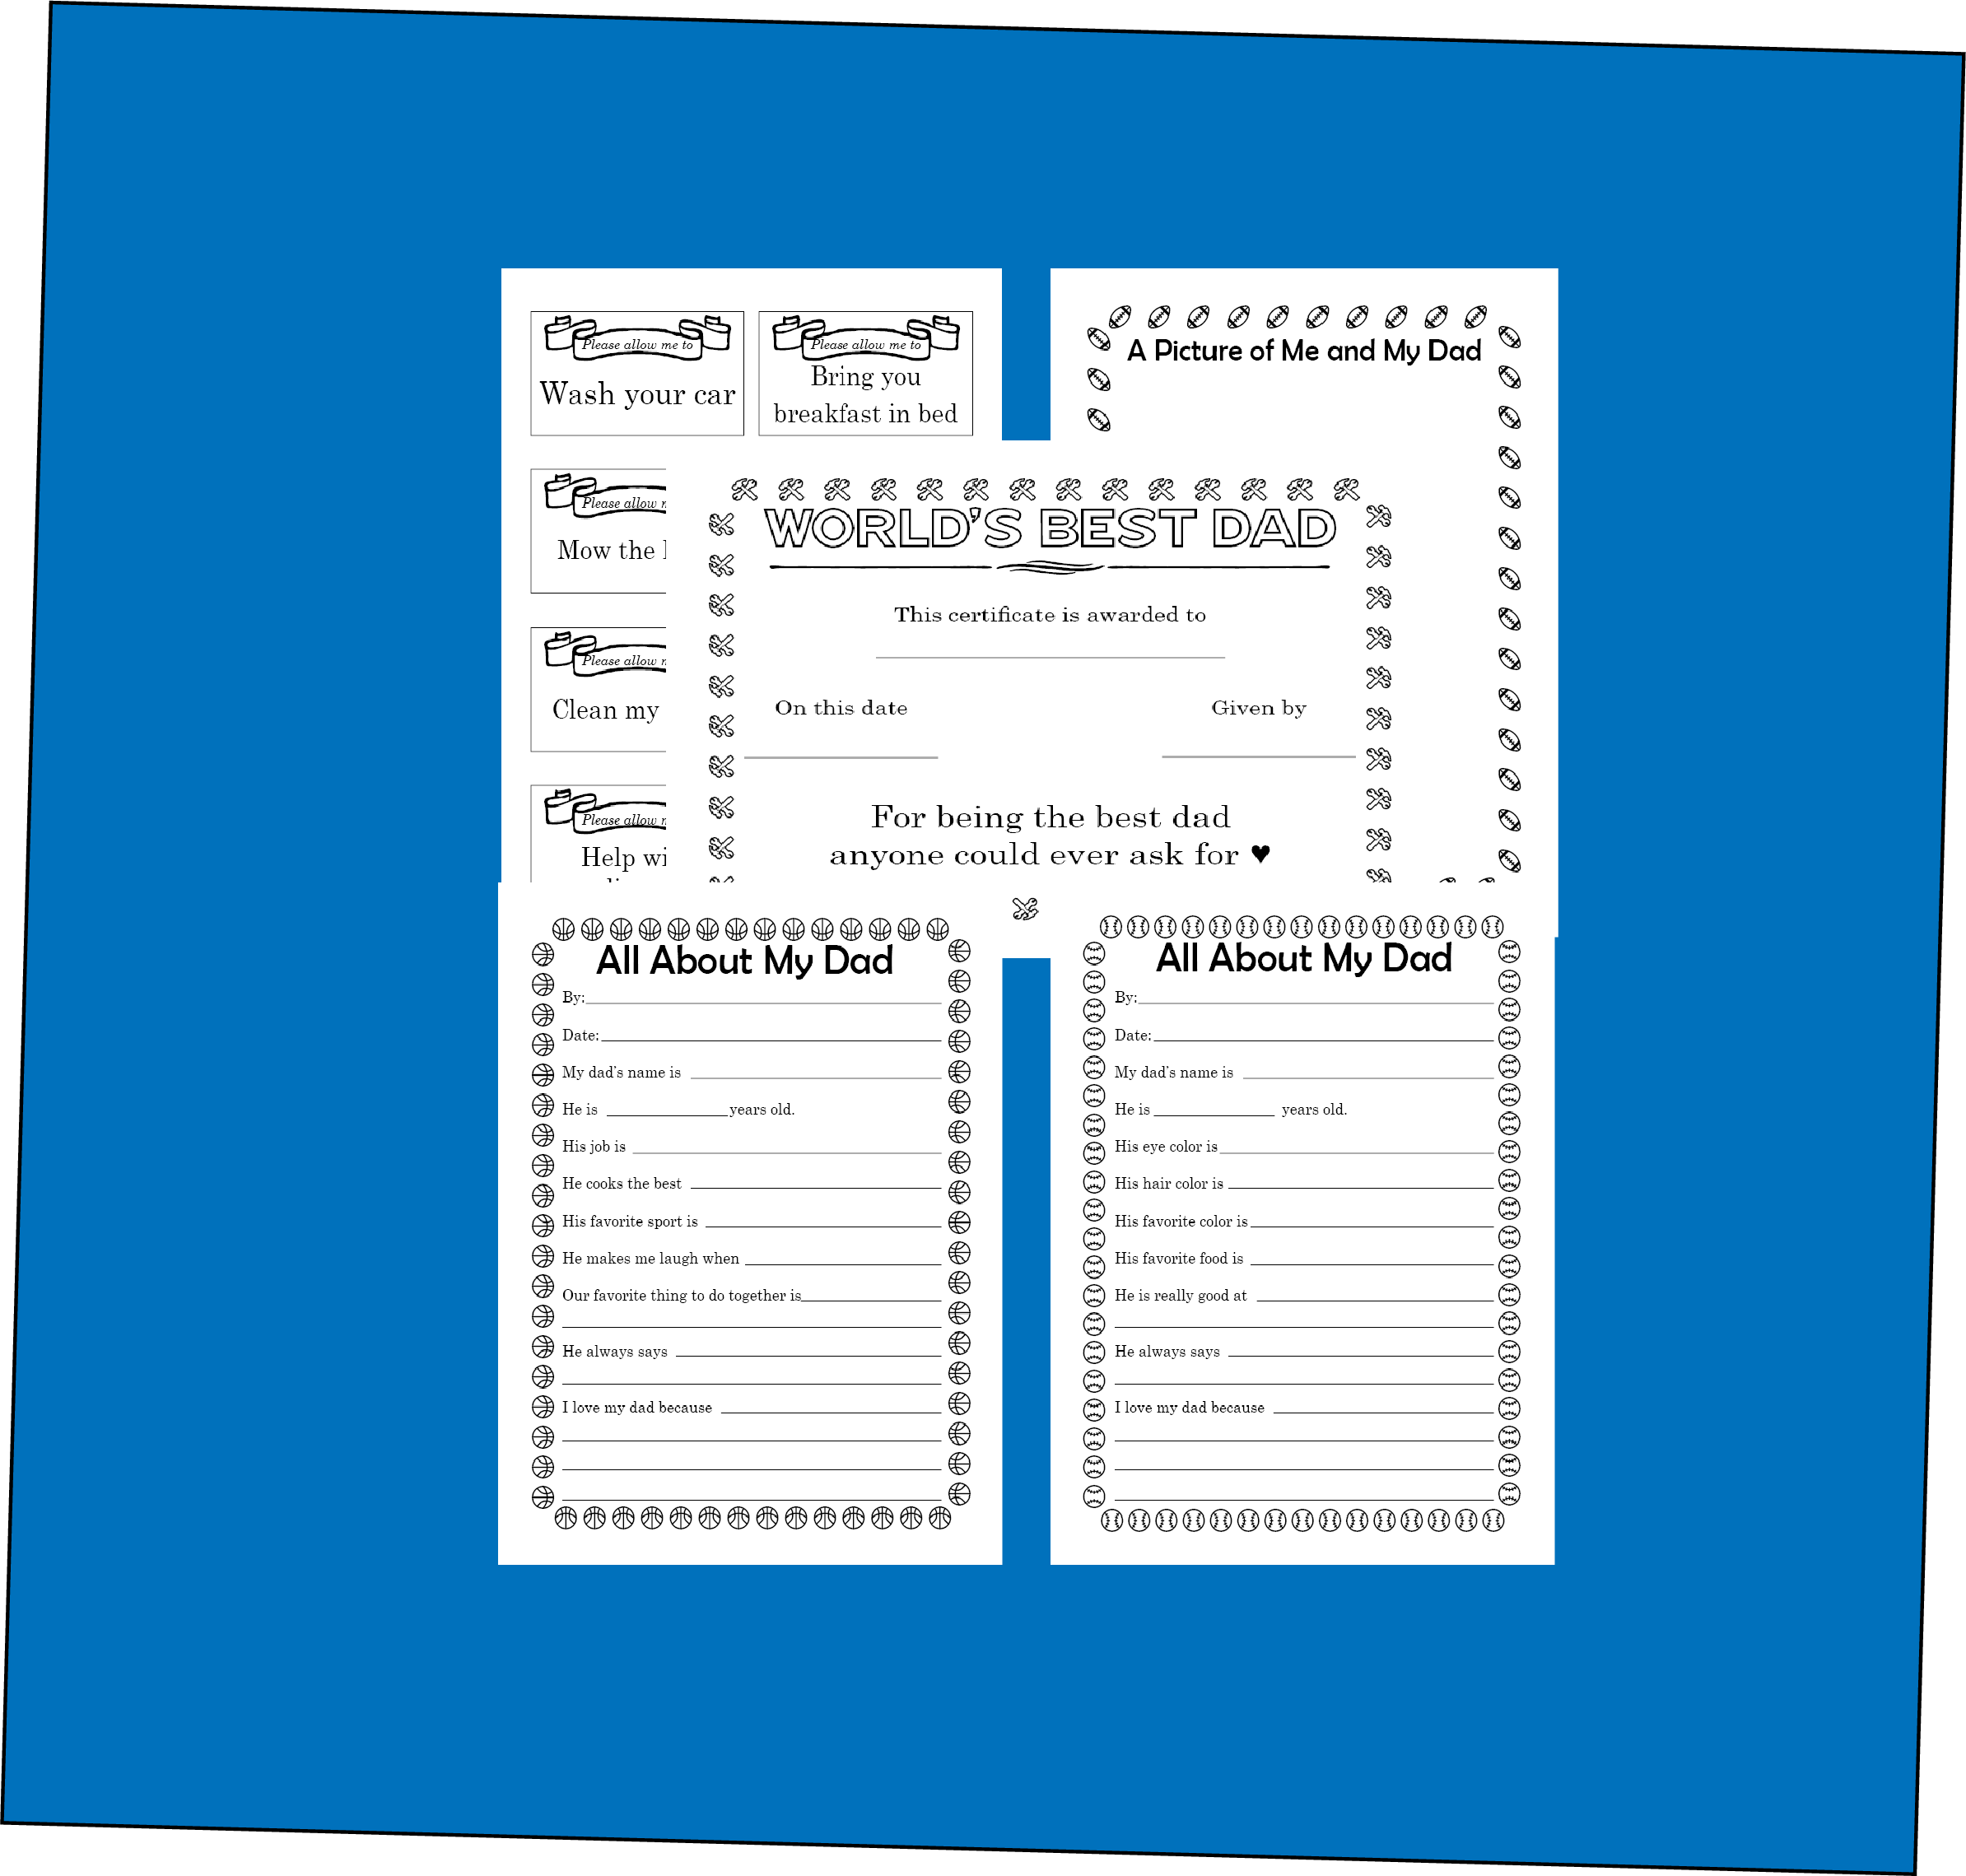 Printable Dad Father S Day Questionnaire Gift In 2020 Fathers Day Questionnaire Worlds Best Dad This Or That Questions